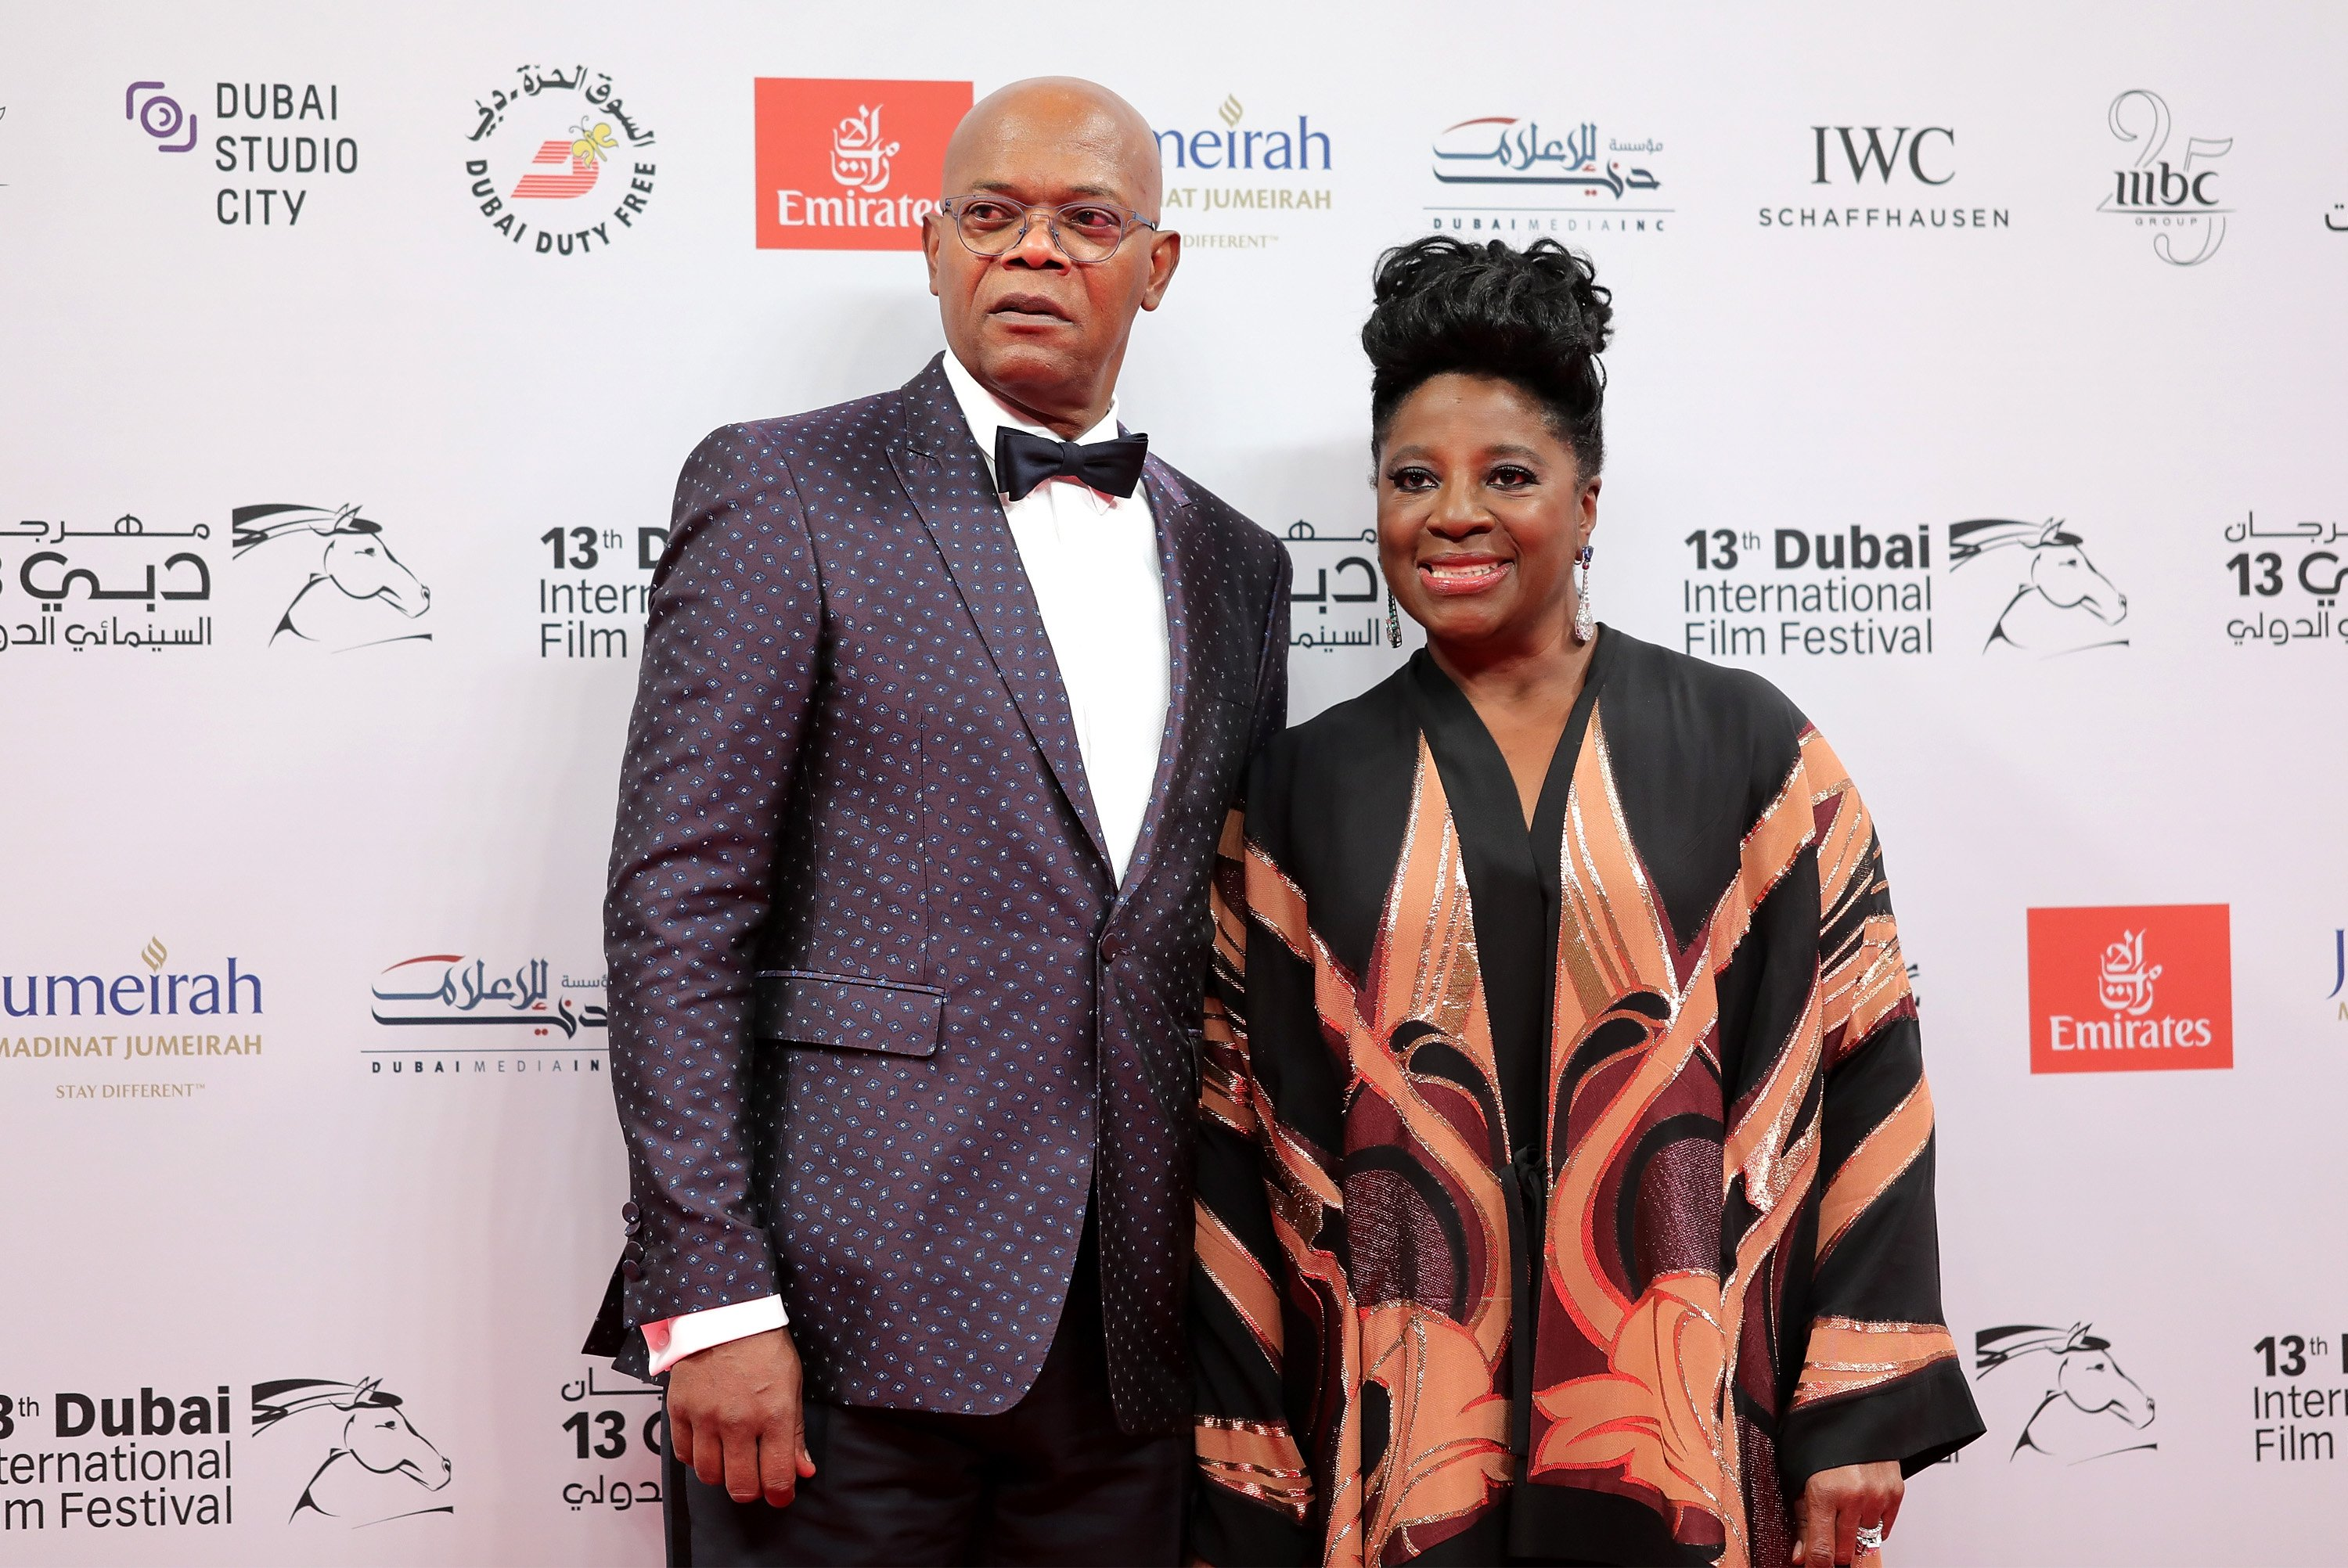 Samuel L Jackson with his wife LaTanya Richardson attend the 13th annual Dubai International Film Festival held at the Madinat Jumeriah Complex on December 7, 2016 in Dubai, United Arab Emirates. | Source: Getty Images.